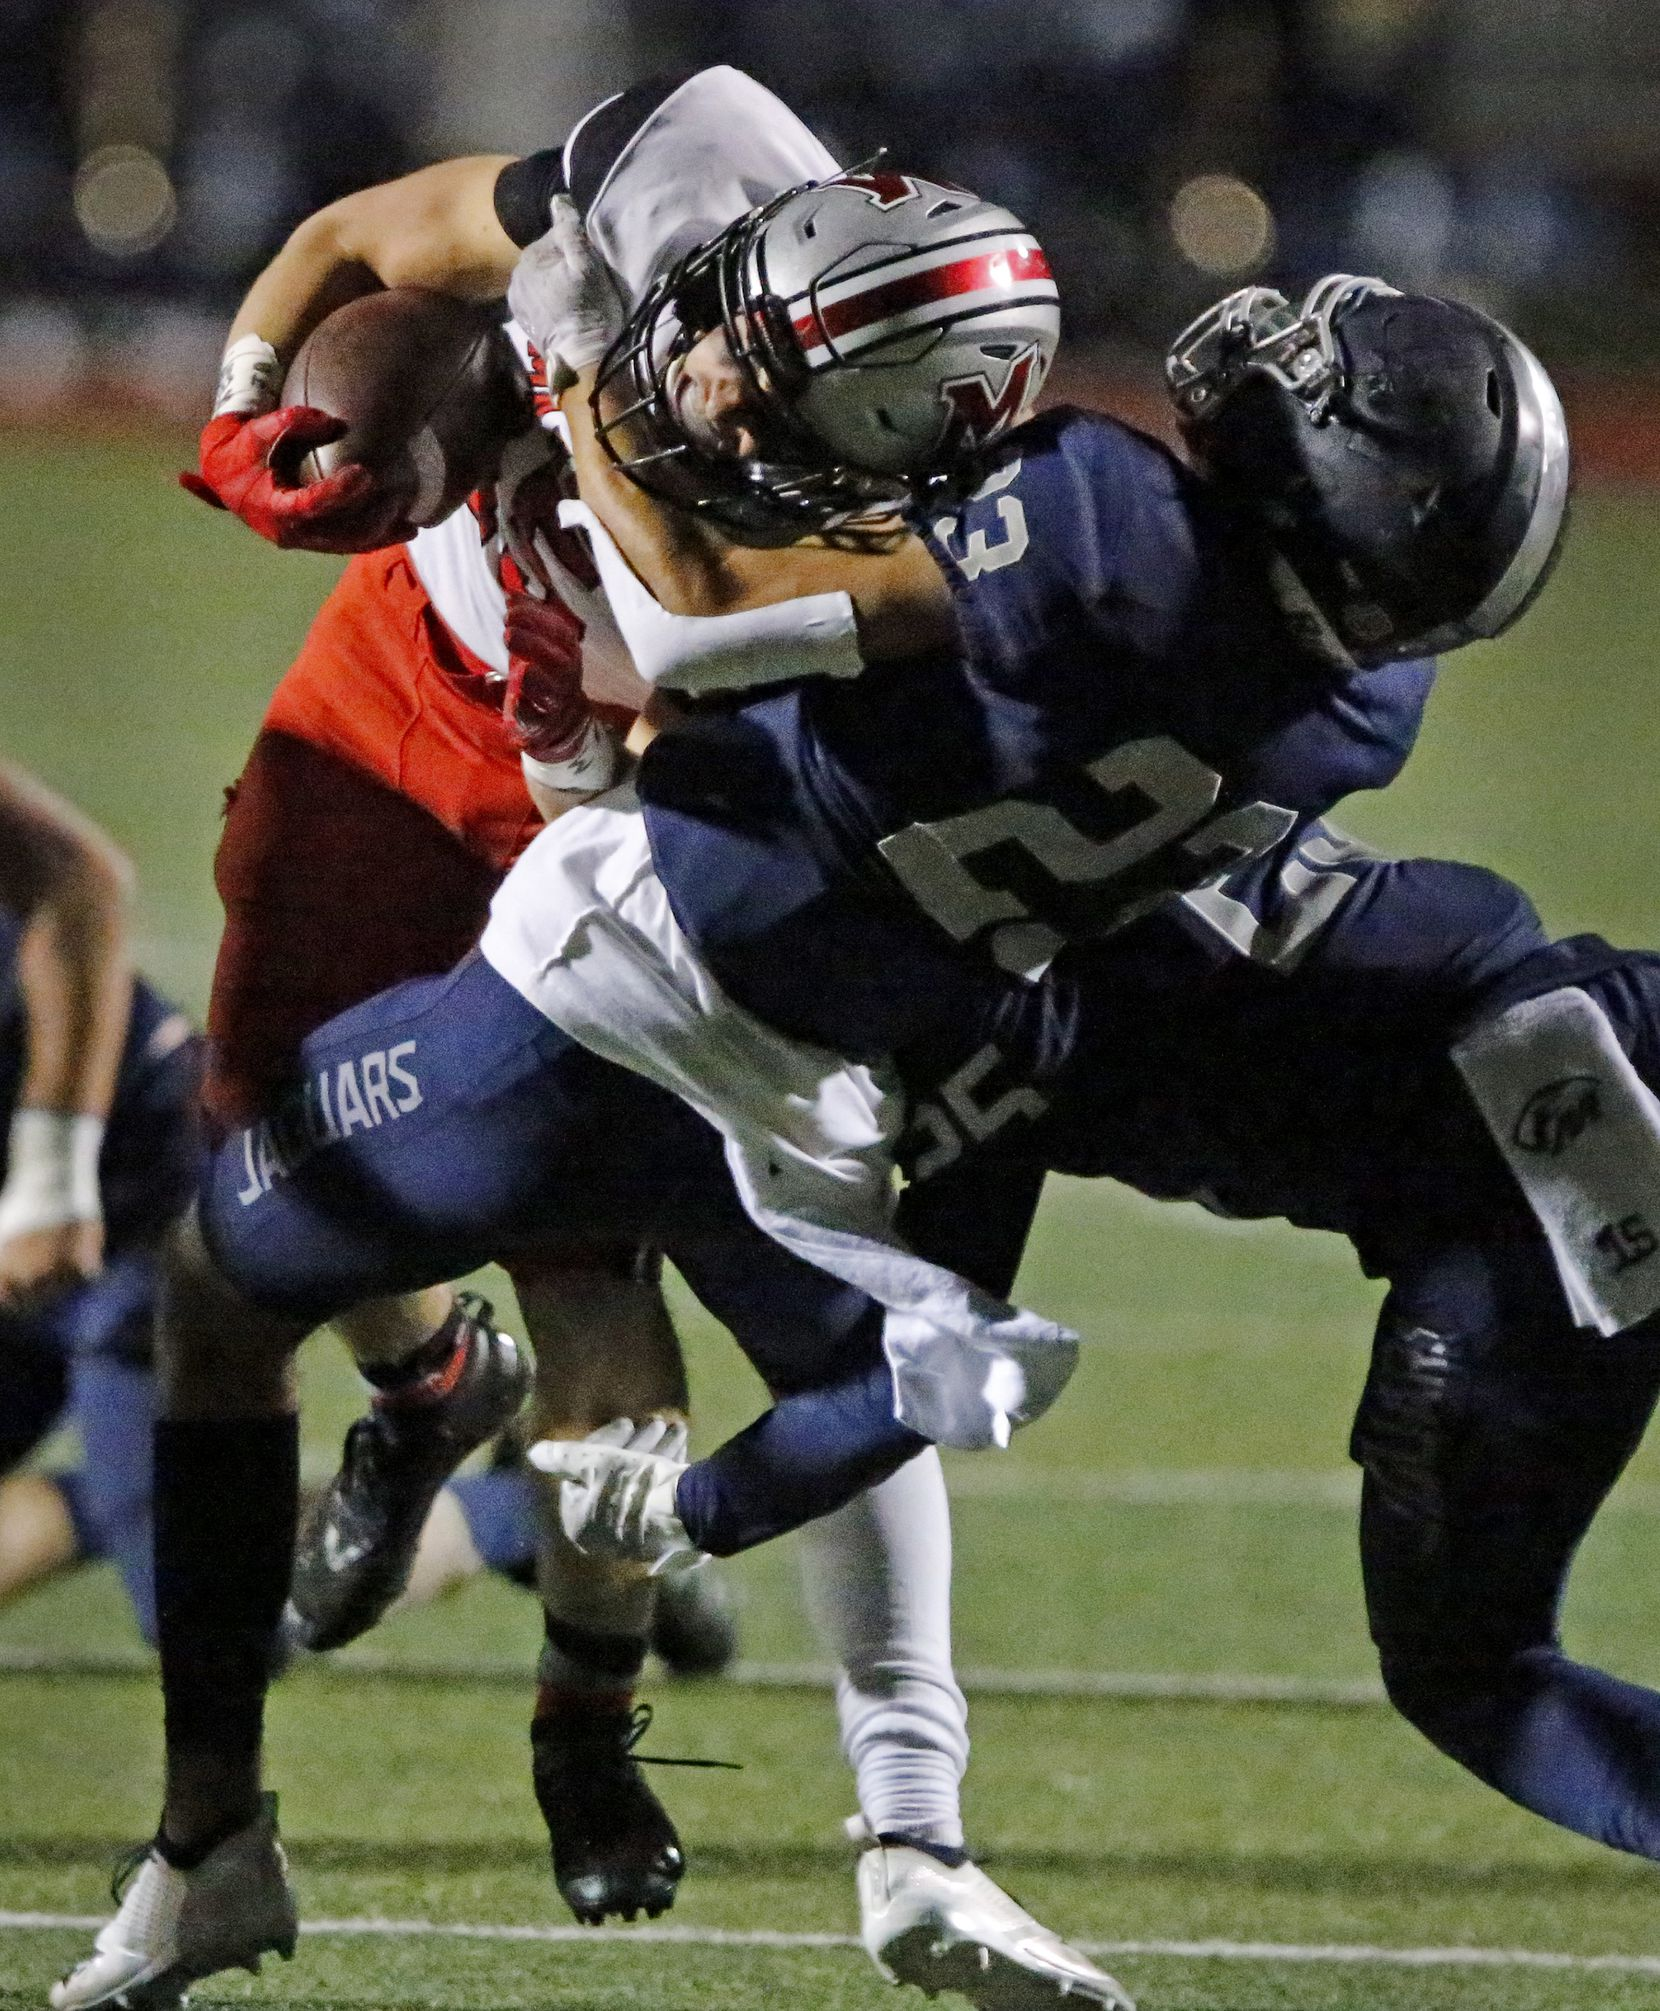 Flower Mound Marcus running back Gabe Espinoza (15) is tackled by Flower Mound High School safety Chase McCall (23) during the first half as Flower Mound High School hosted Flower Mound Marcus High School at Neal E. Wilson Jaguar Stadium on Friday night, October 23, 2020. (Stewart F. House/Special Contributor)